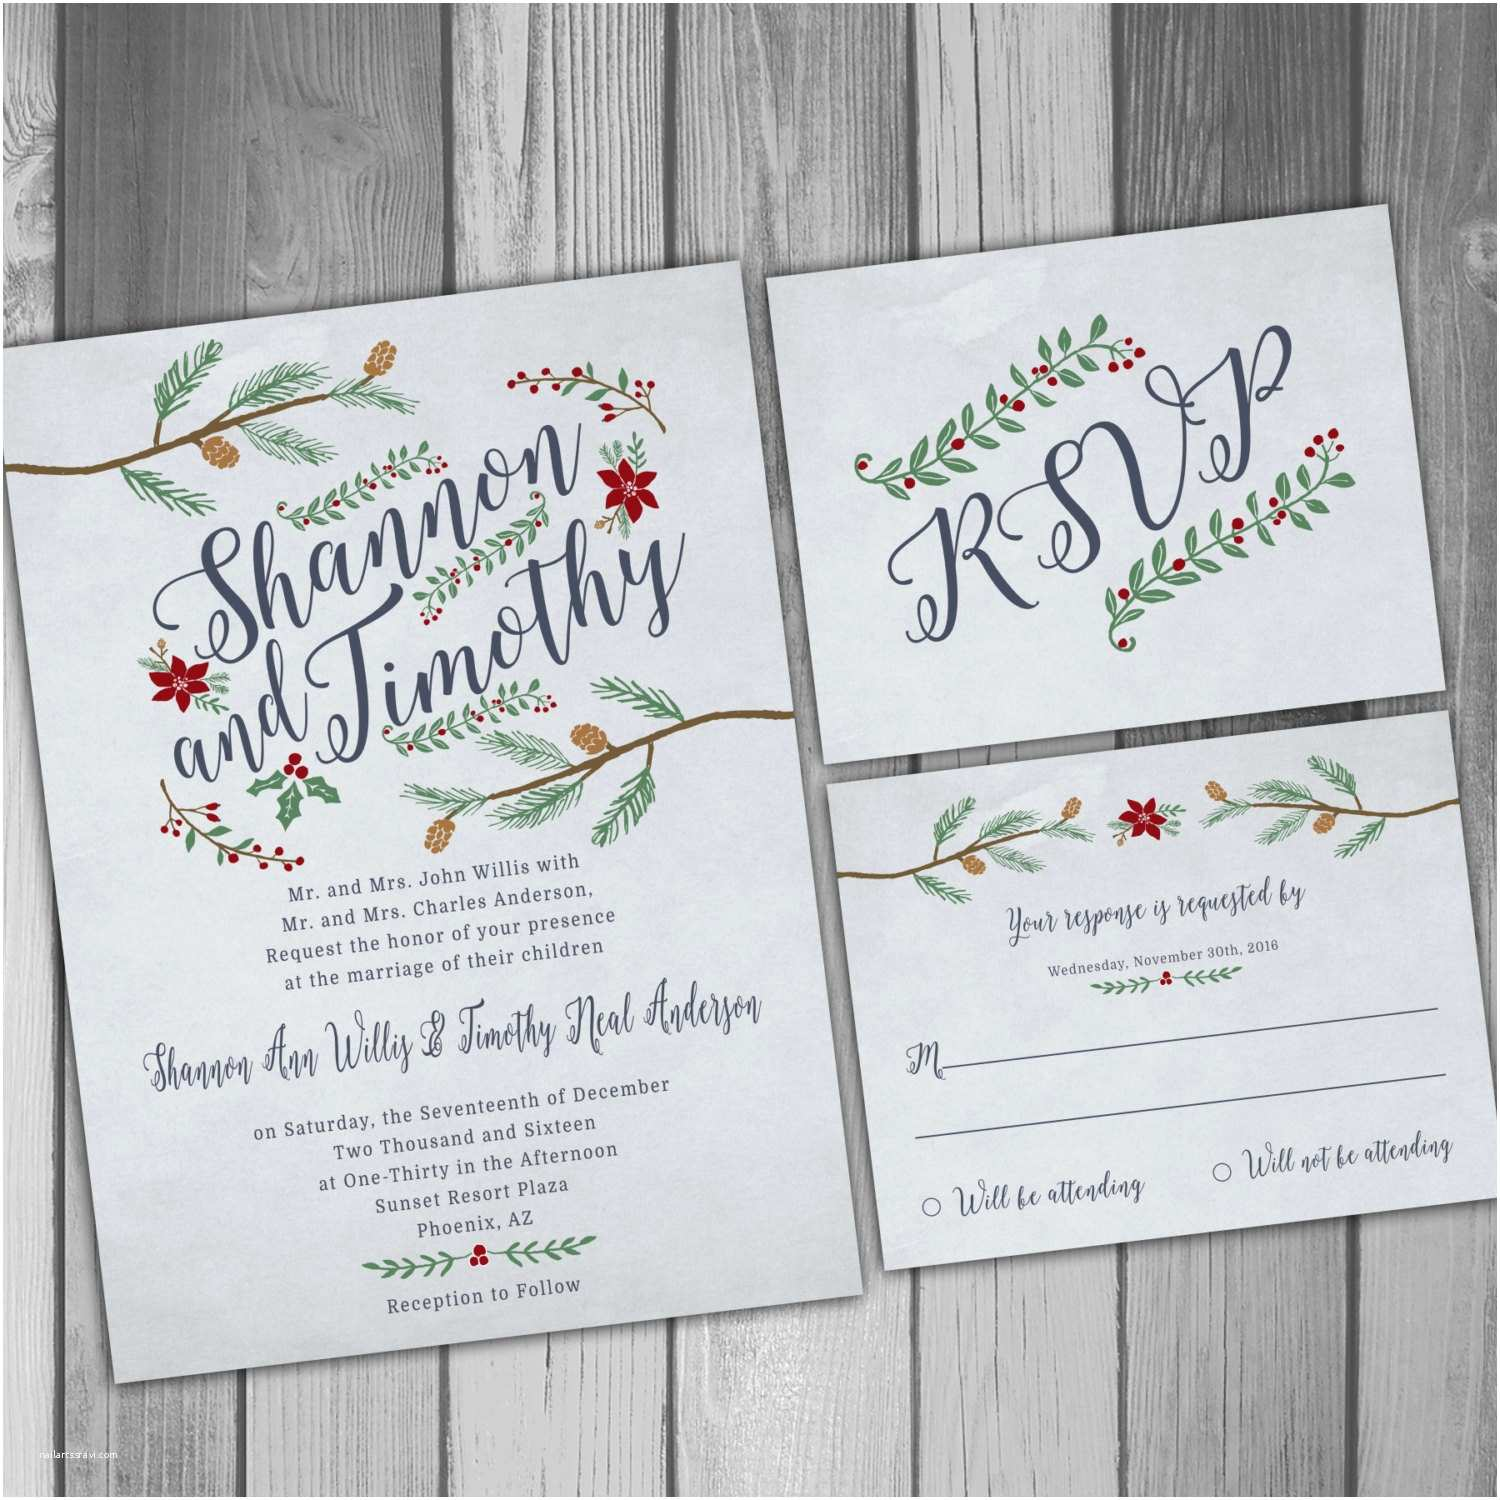 Vistaprint Com Wedding Invitations Vistaprint Wedding Invitation Reviews Various Invitation